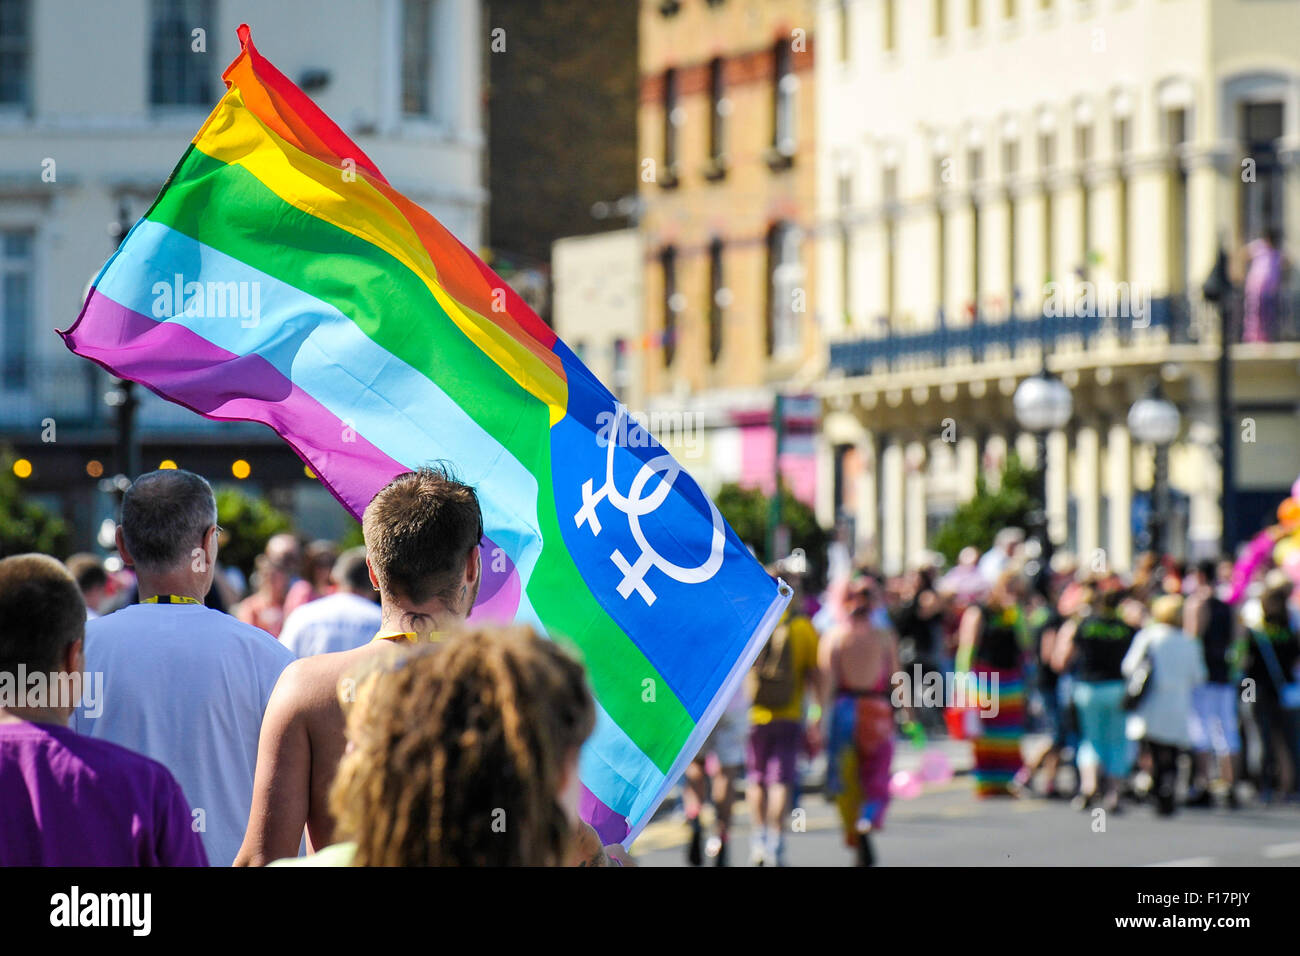 Margate, Kent, UK. 29th August, 2015. A large LGBTQ+ flag is proudly held aloft as thousands gather to lend their - Stock Image